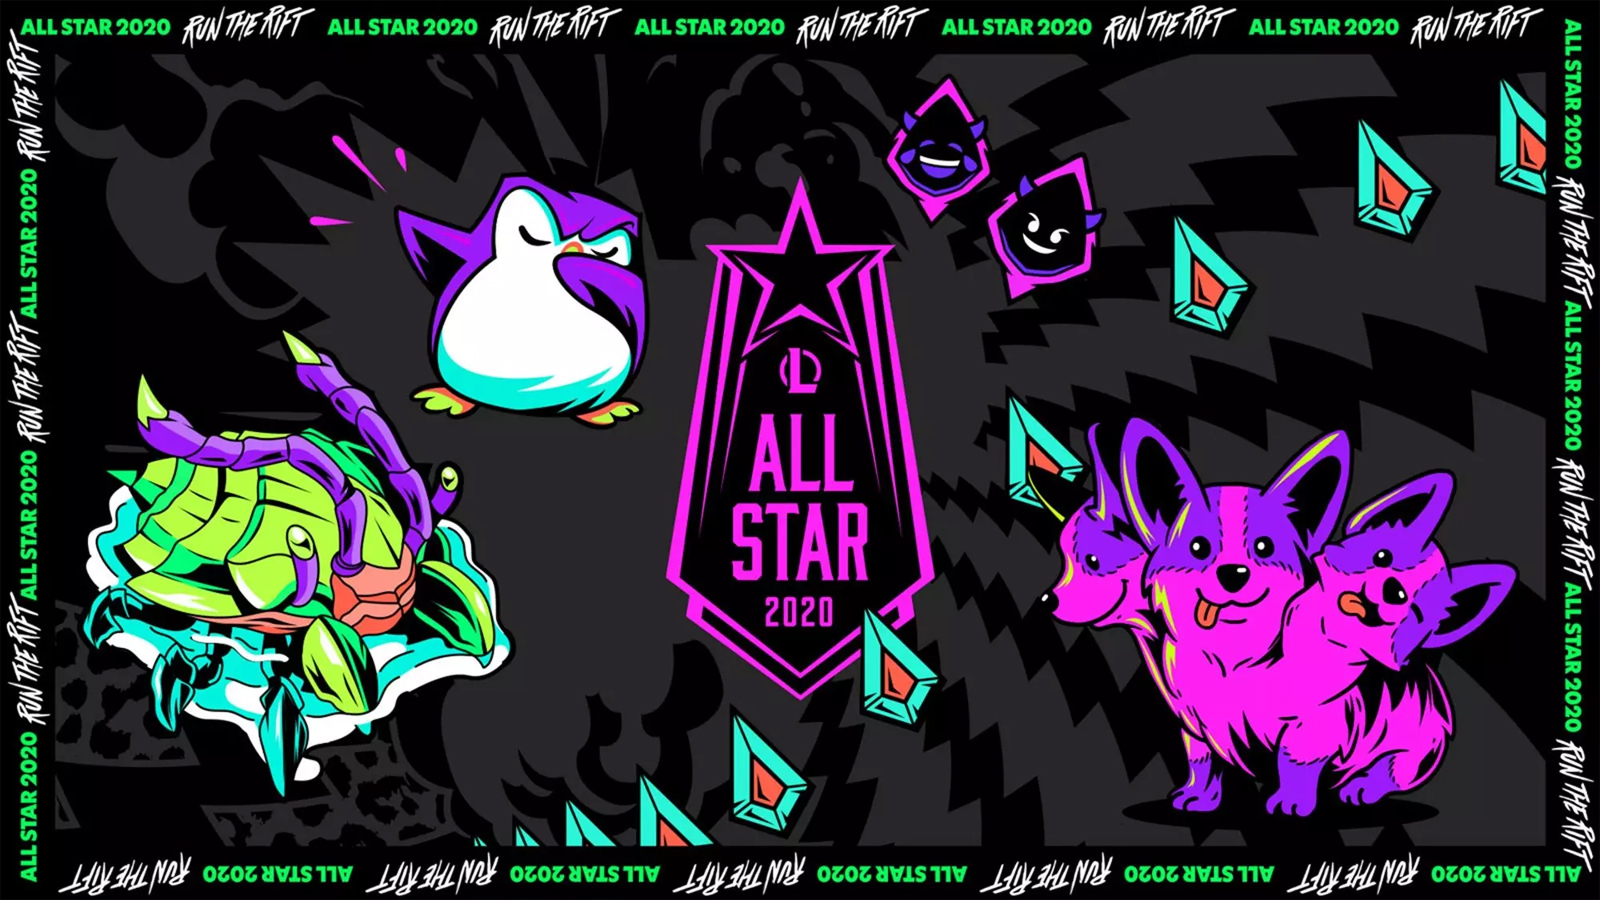 League of Legends 2020 All-Star header